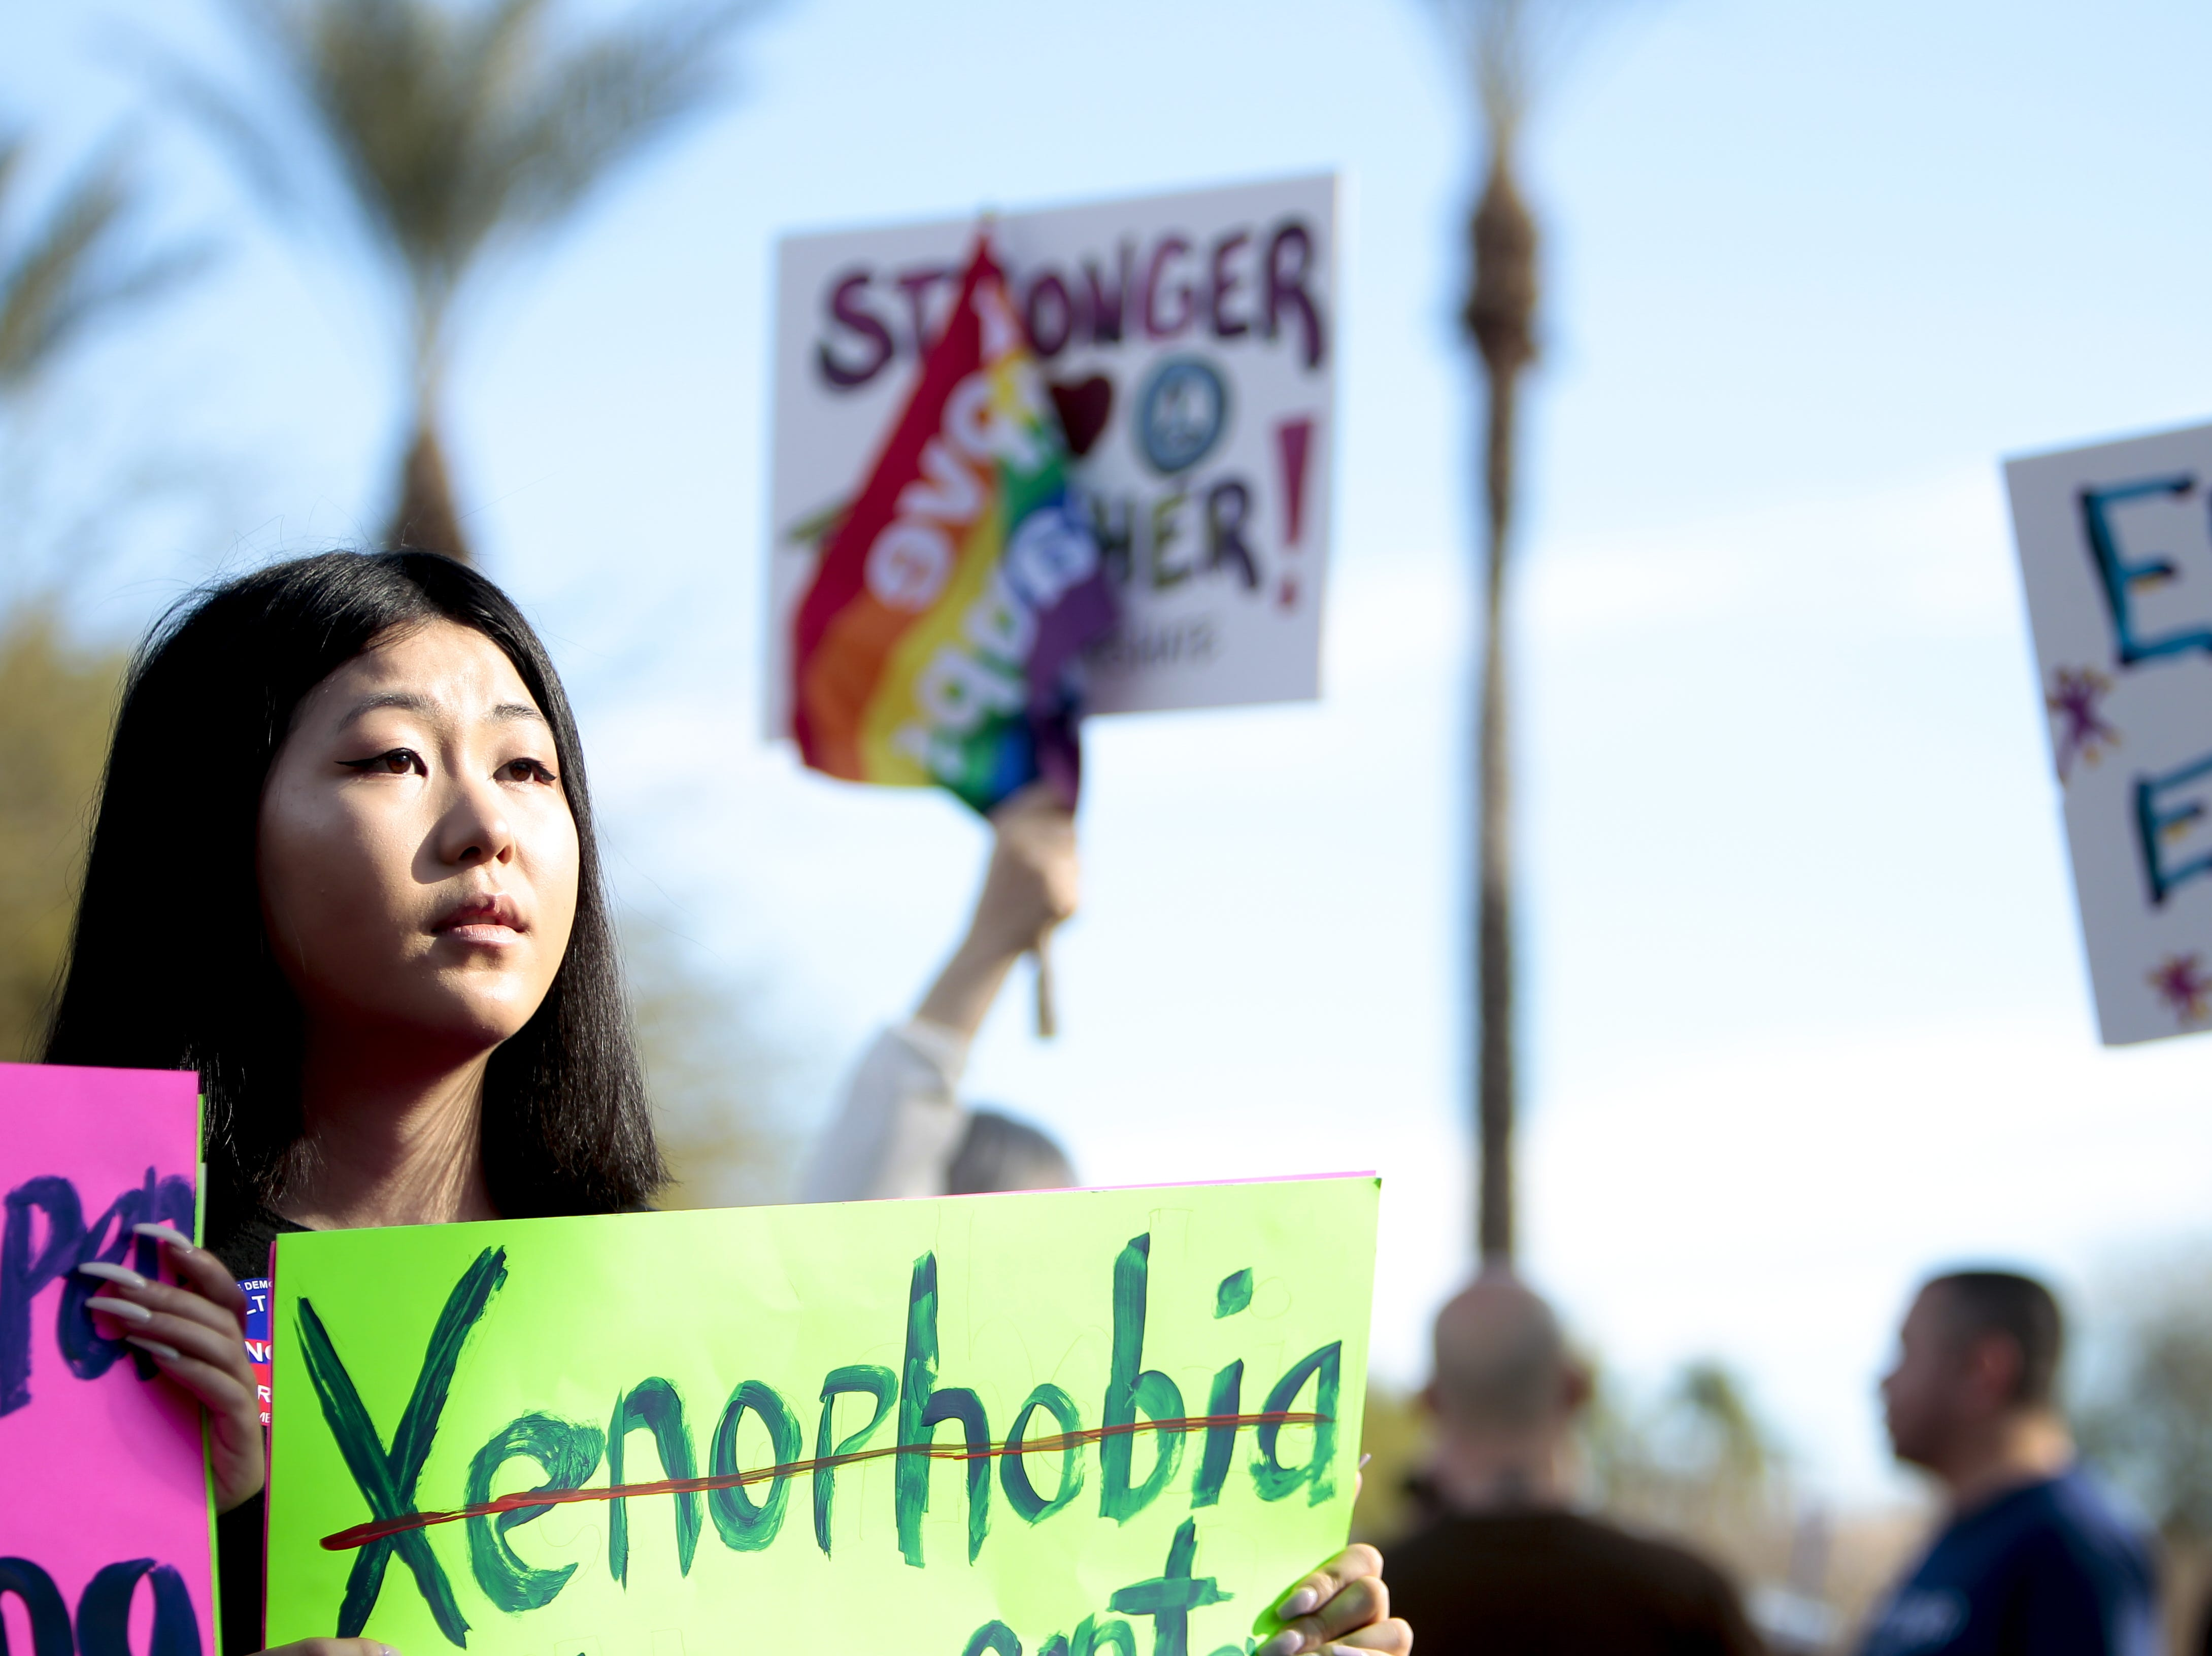 Hunter Lee listens to the speakers as she holds a sign protesting xenophobia at the Phoenix Women's March on Jan. 19, 2019, at the Arizona Capitol.